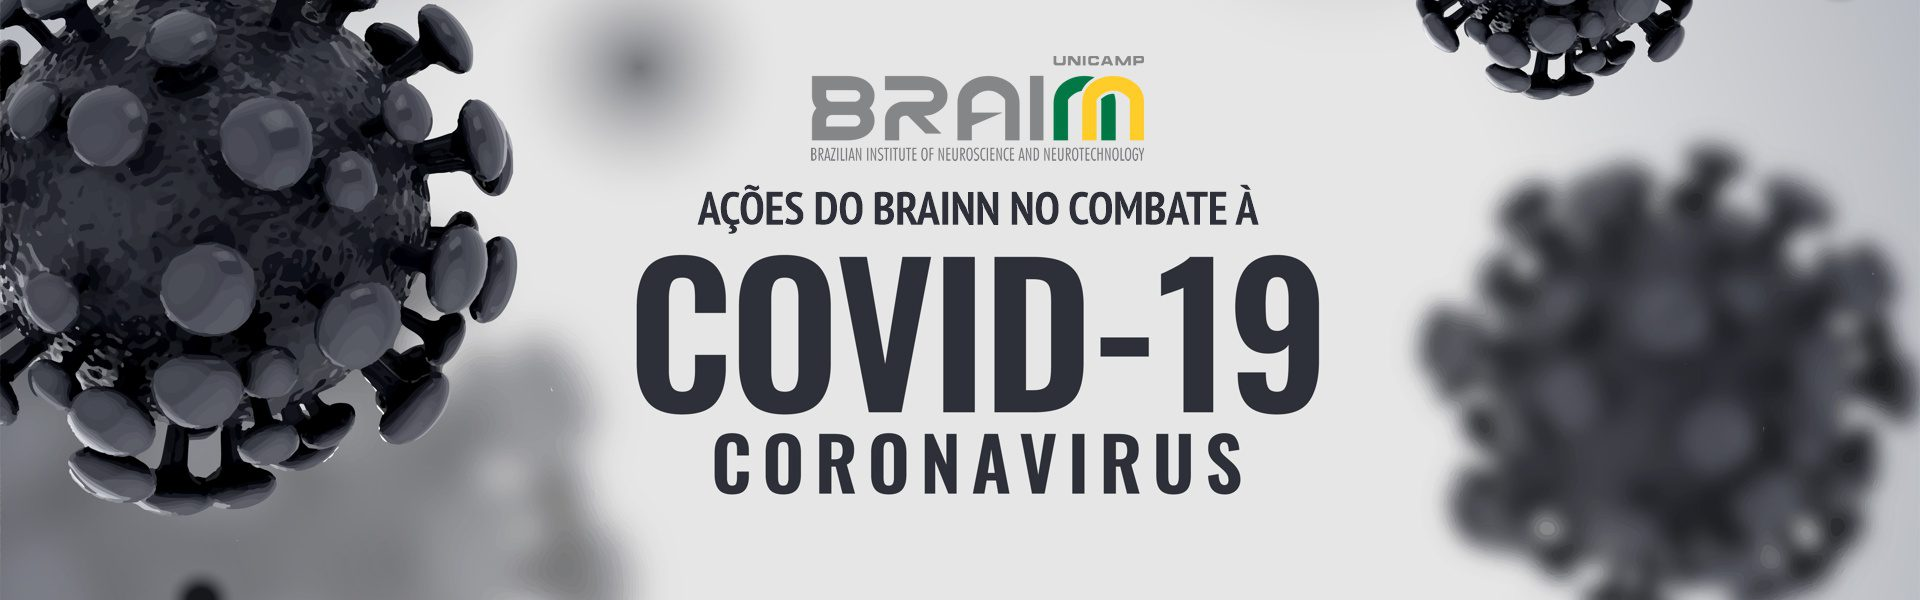 acoes do BRAINN no combate ao coronavirus